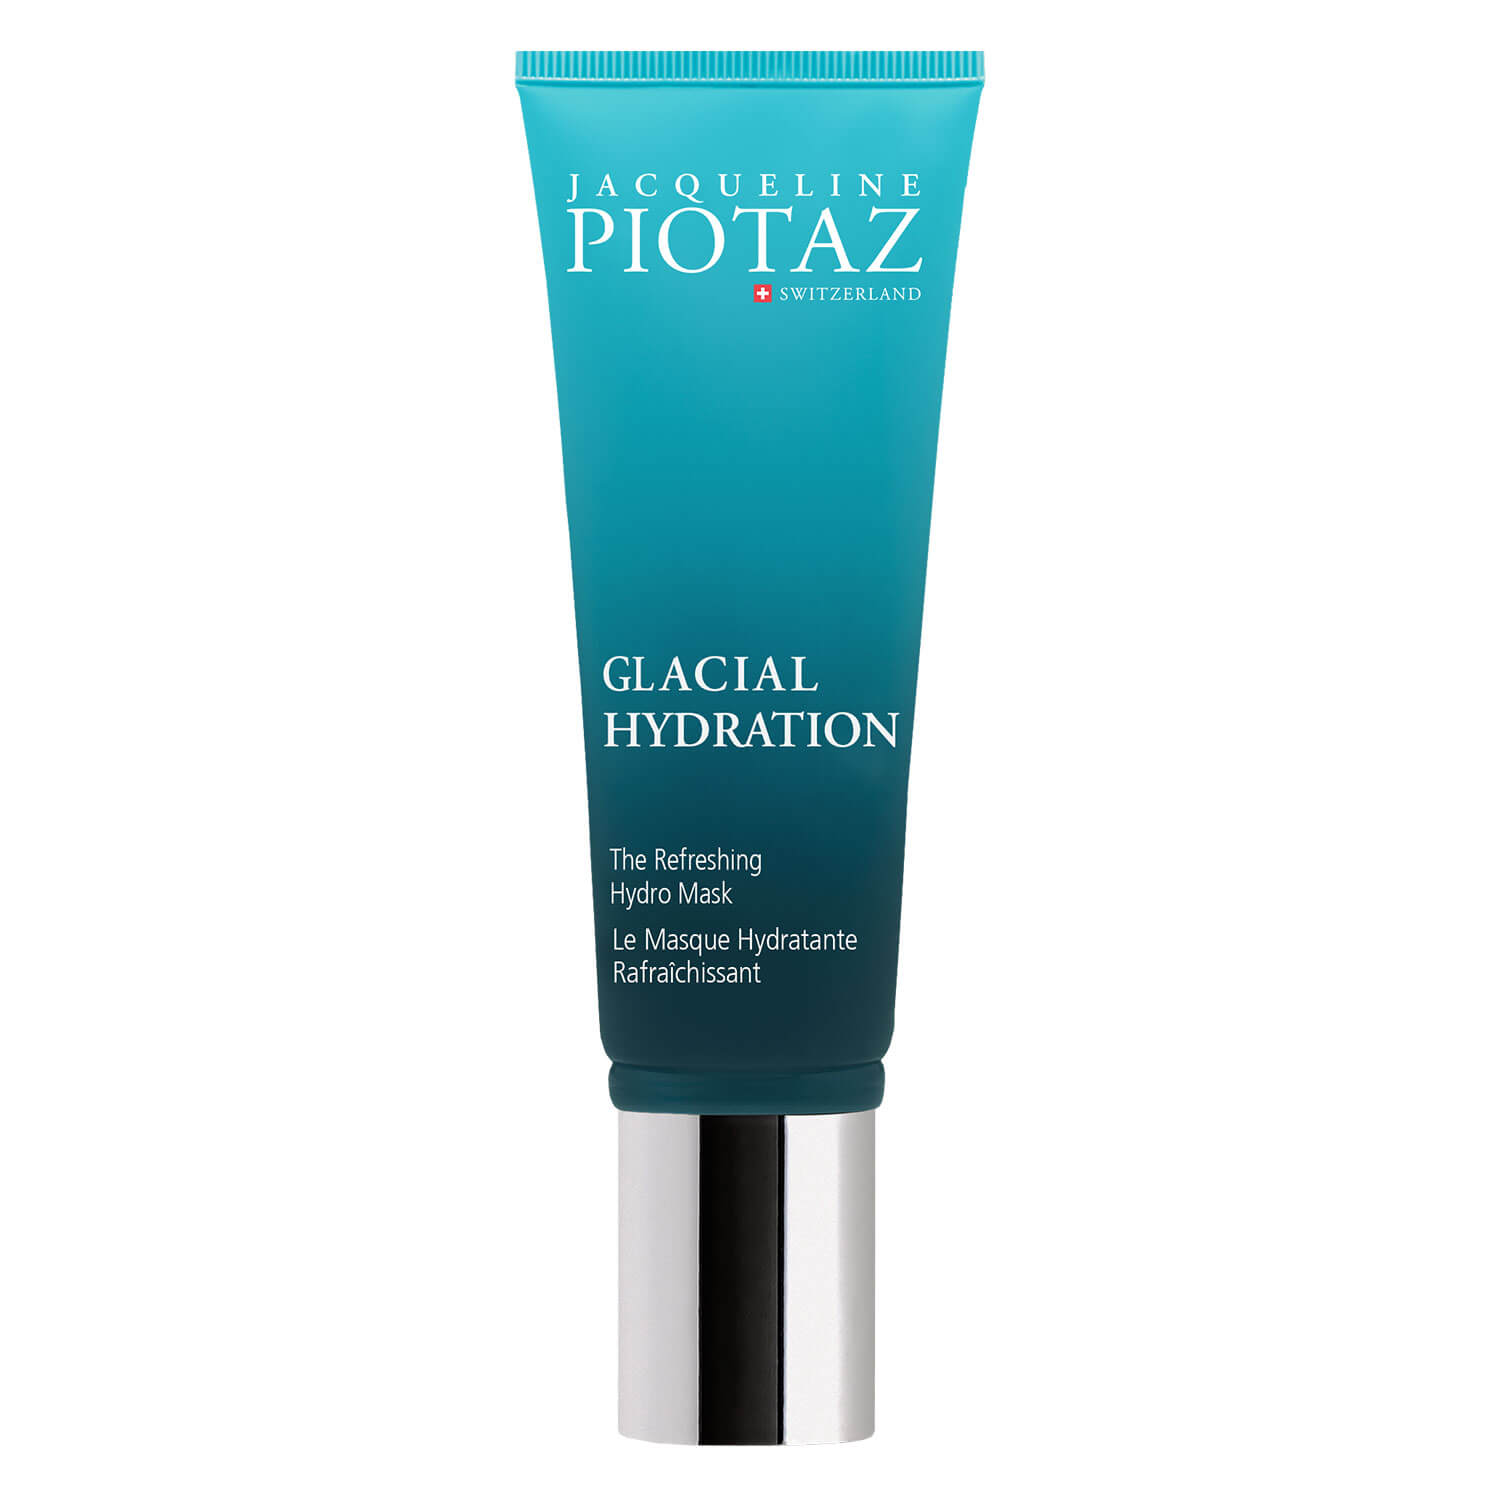 Glacial Hydration - The Refreshing Hydro Mask